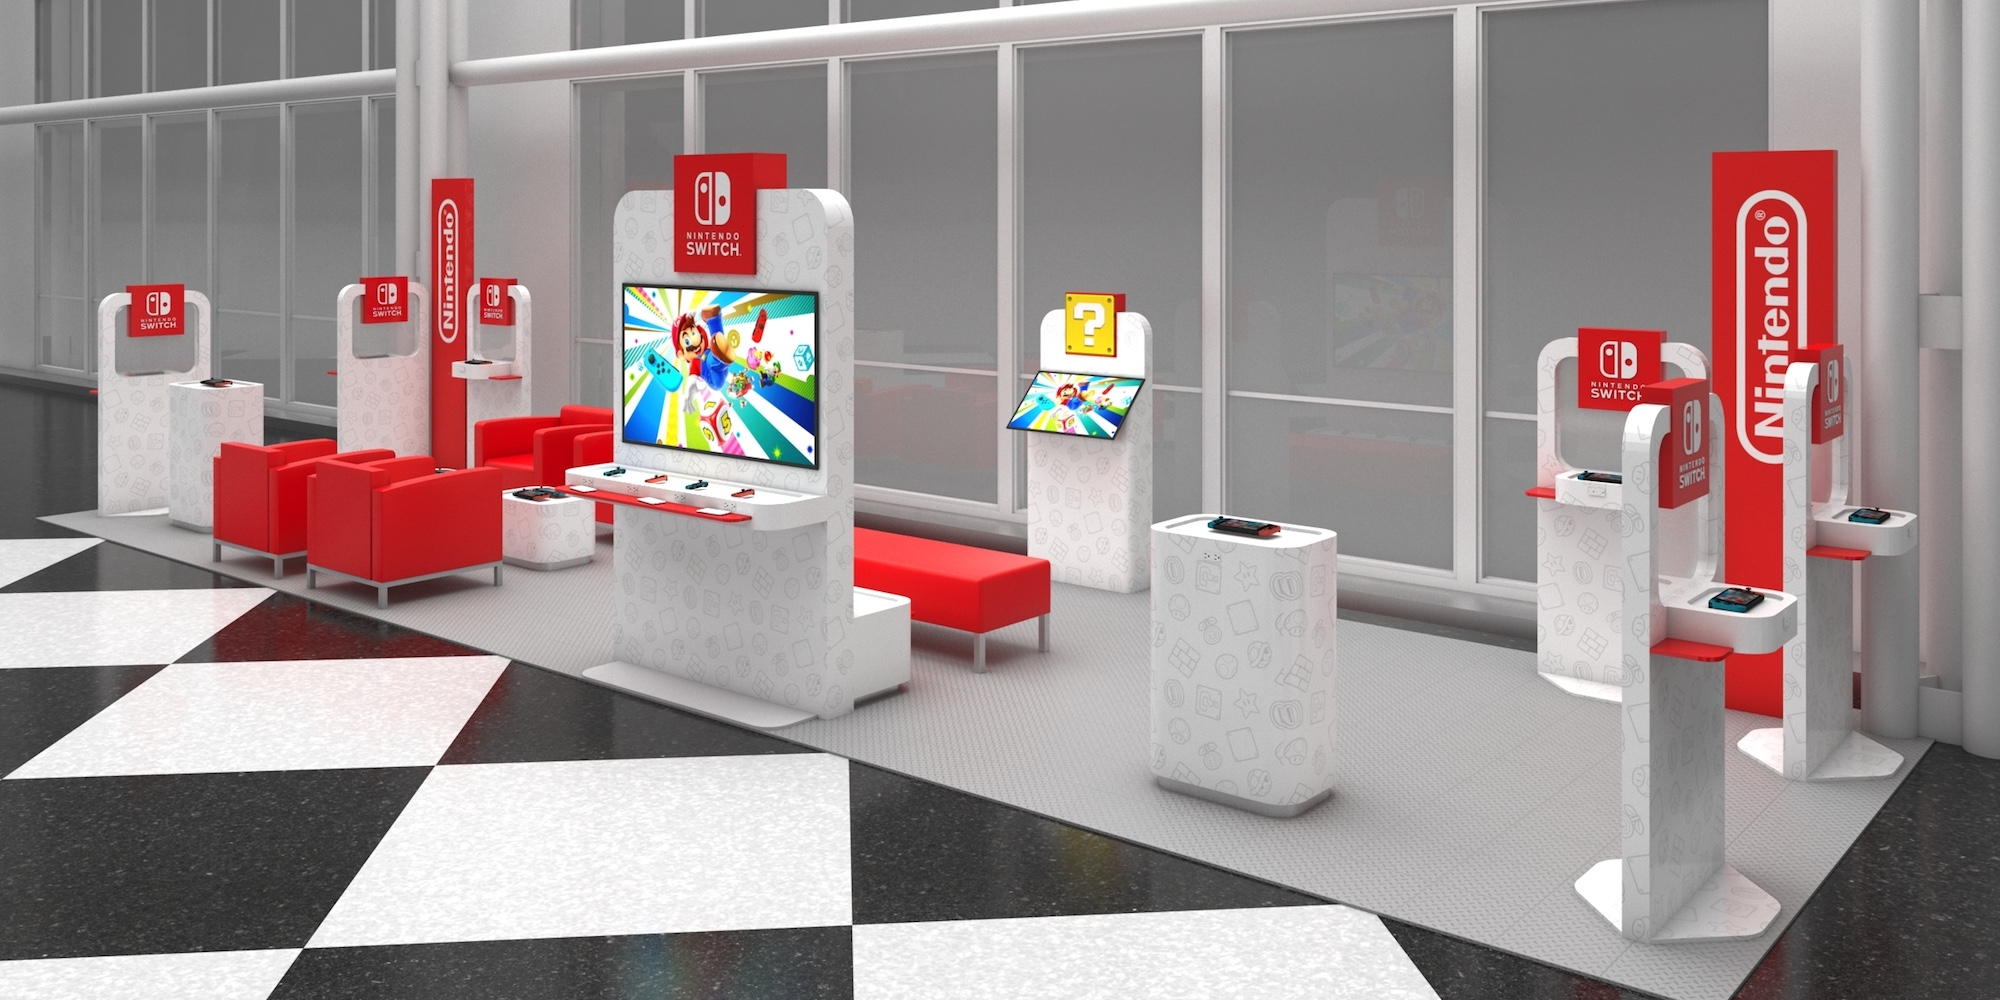 Nintendo airport lounge offers free gear, charging ports, more - 9to5Toys